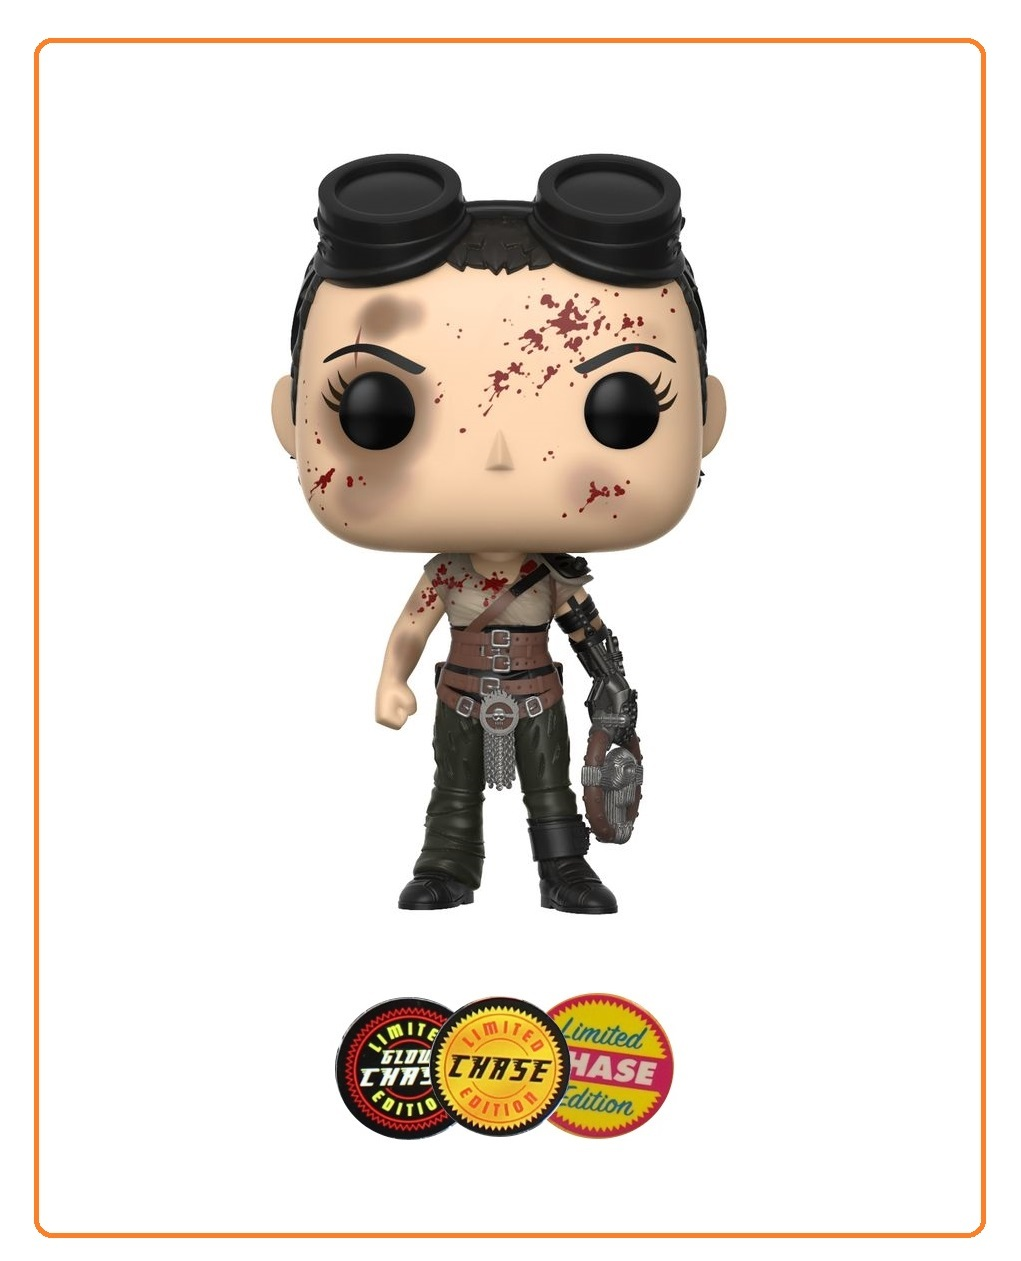 Mad Max: Fury Road - Furiosa Pop! Vinyl Figure (with a chance for a Chase version!) image